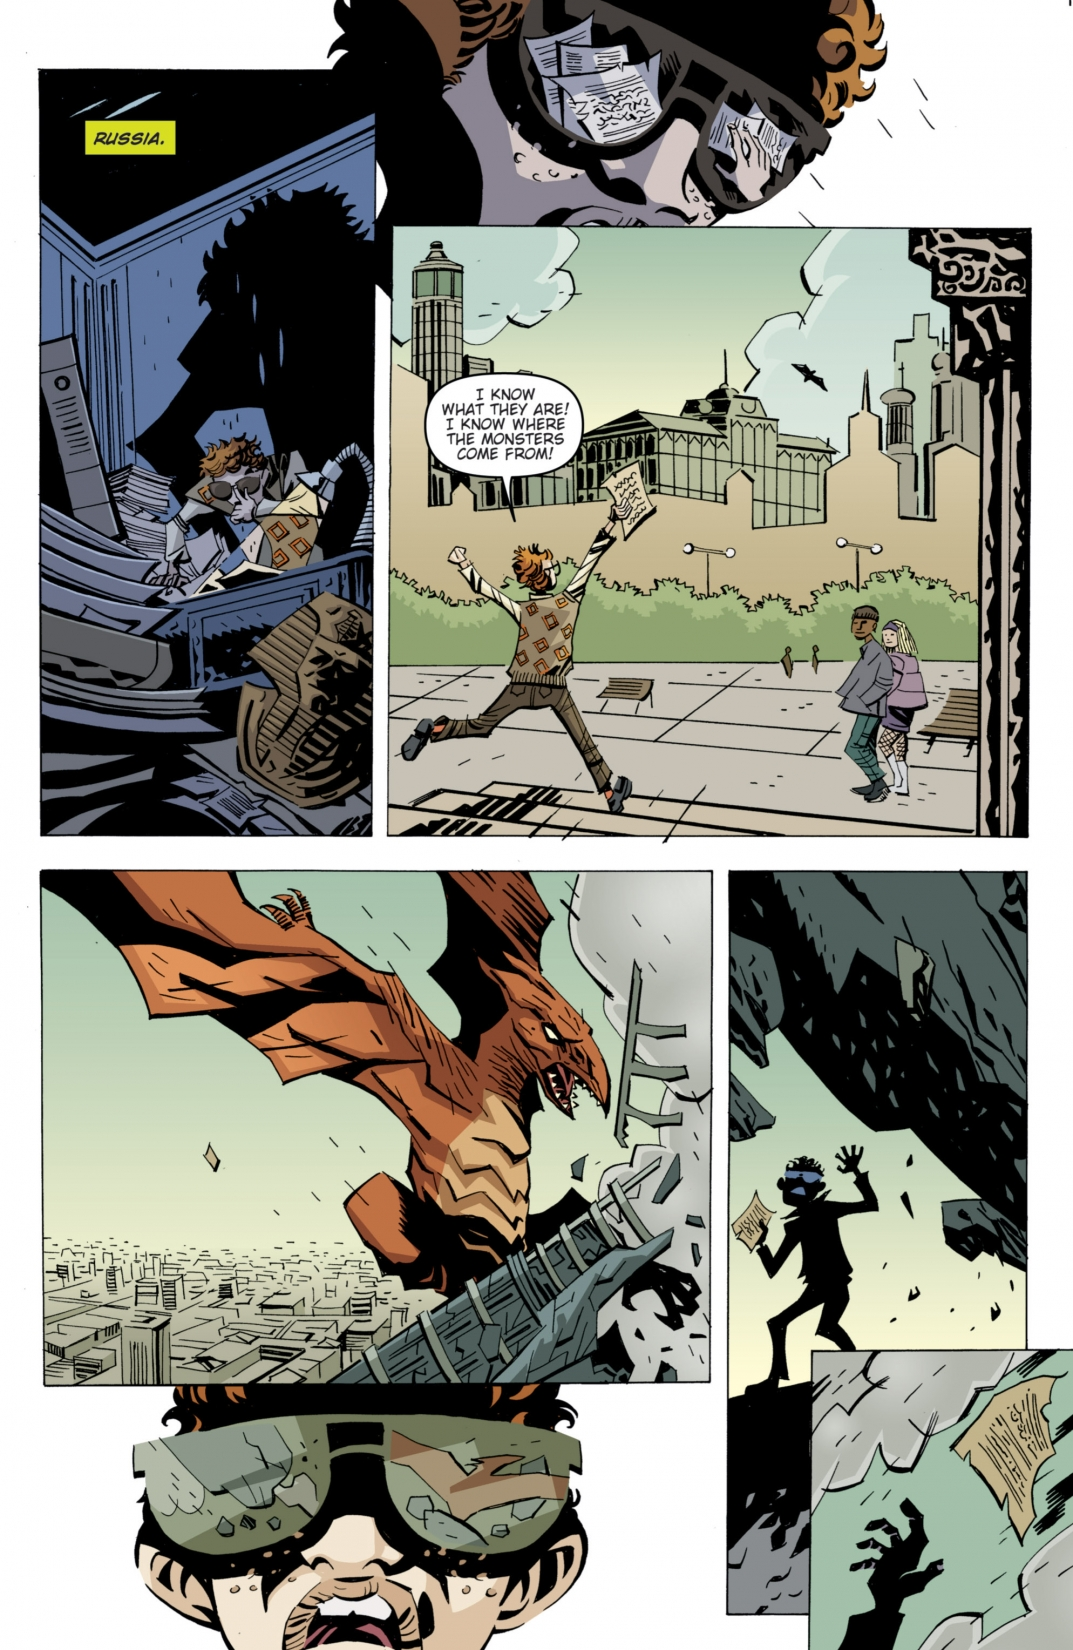 KINGDOM OF MONSTERS Issue 5 Page 1.jpg